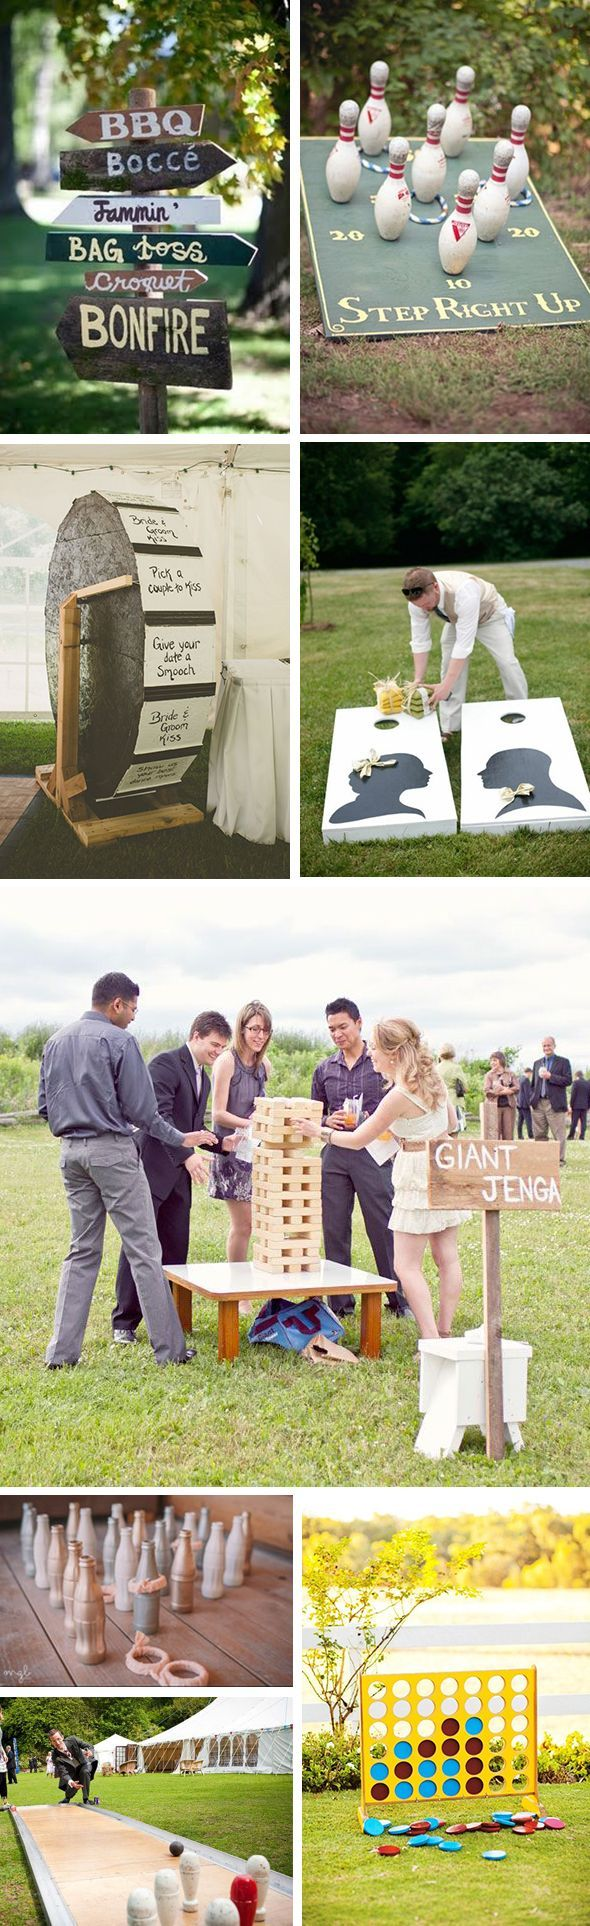 We Know How to Do It on | Reception, Backyard and Lawn games